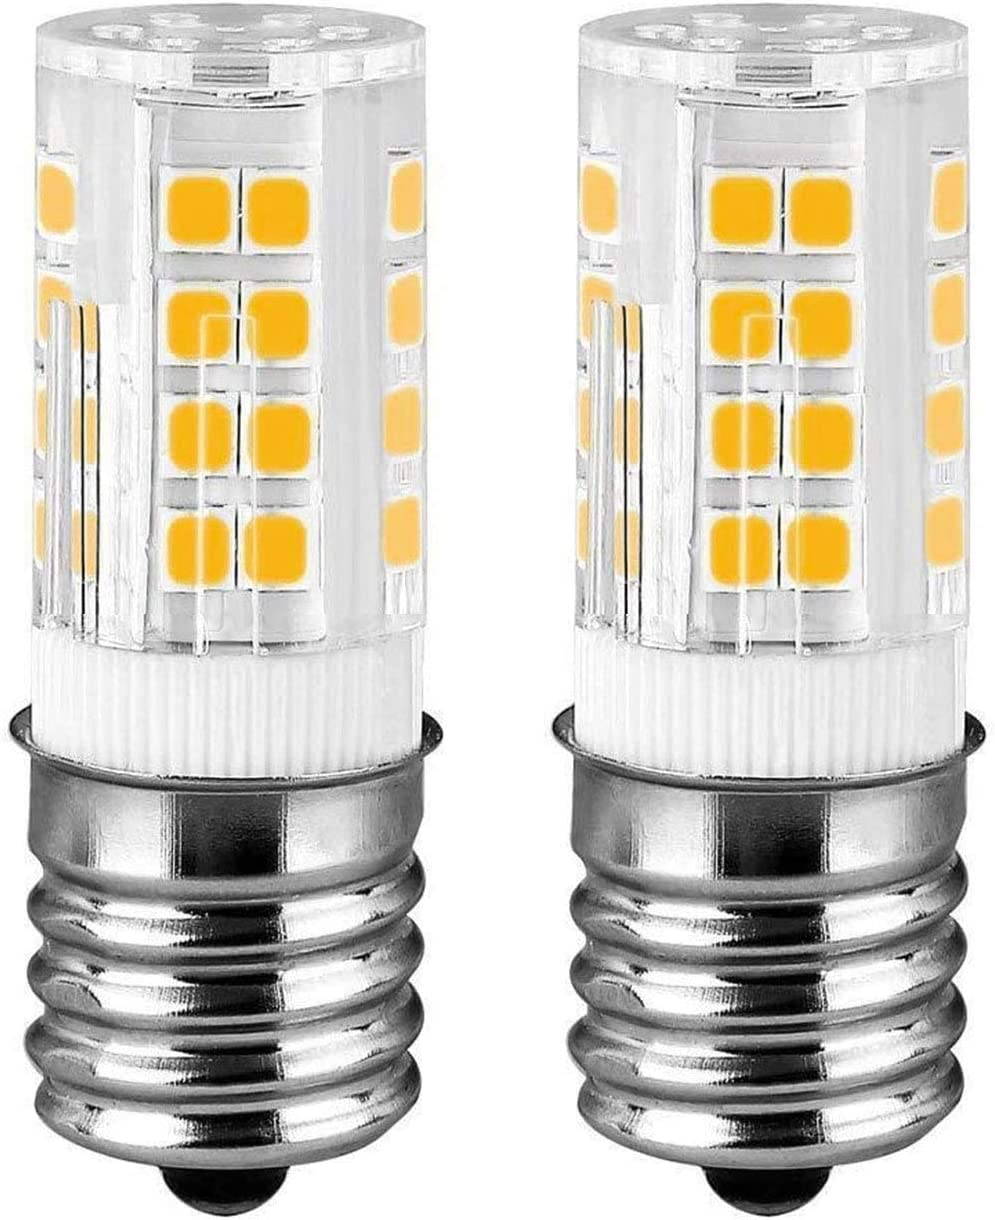 E17 Whirlpoo LED Microwave Oven Bulb, 40W 8206232A Equivalent, AC 110V-130V, Warm White Appliance Bulb (3000K, 2-Pack)